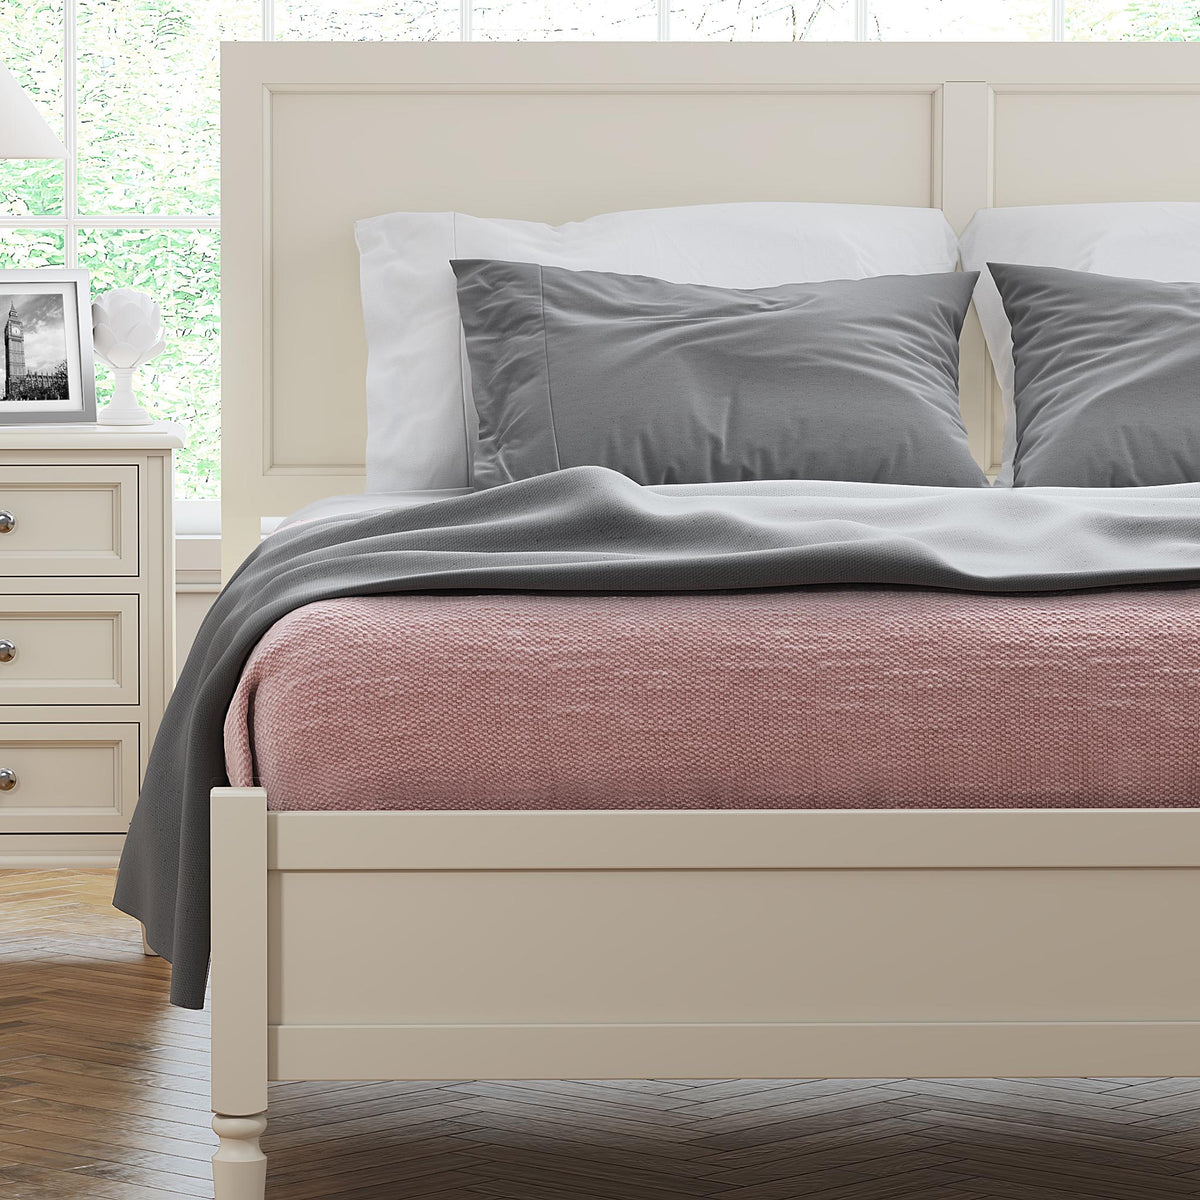 The Muslanne Cream 5' King Size Bed Frame - Close Up of Lifestyle